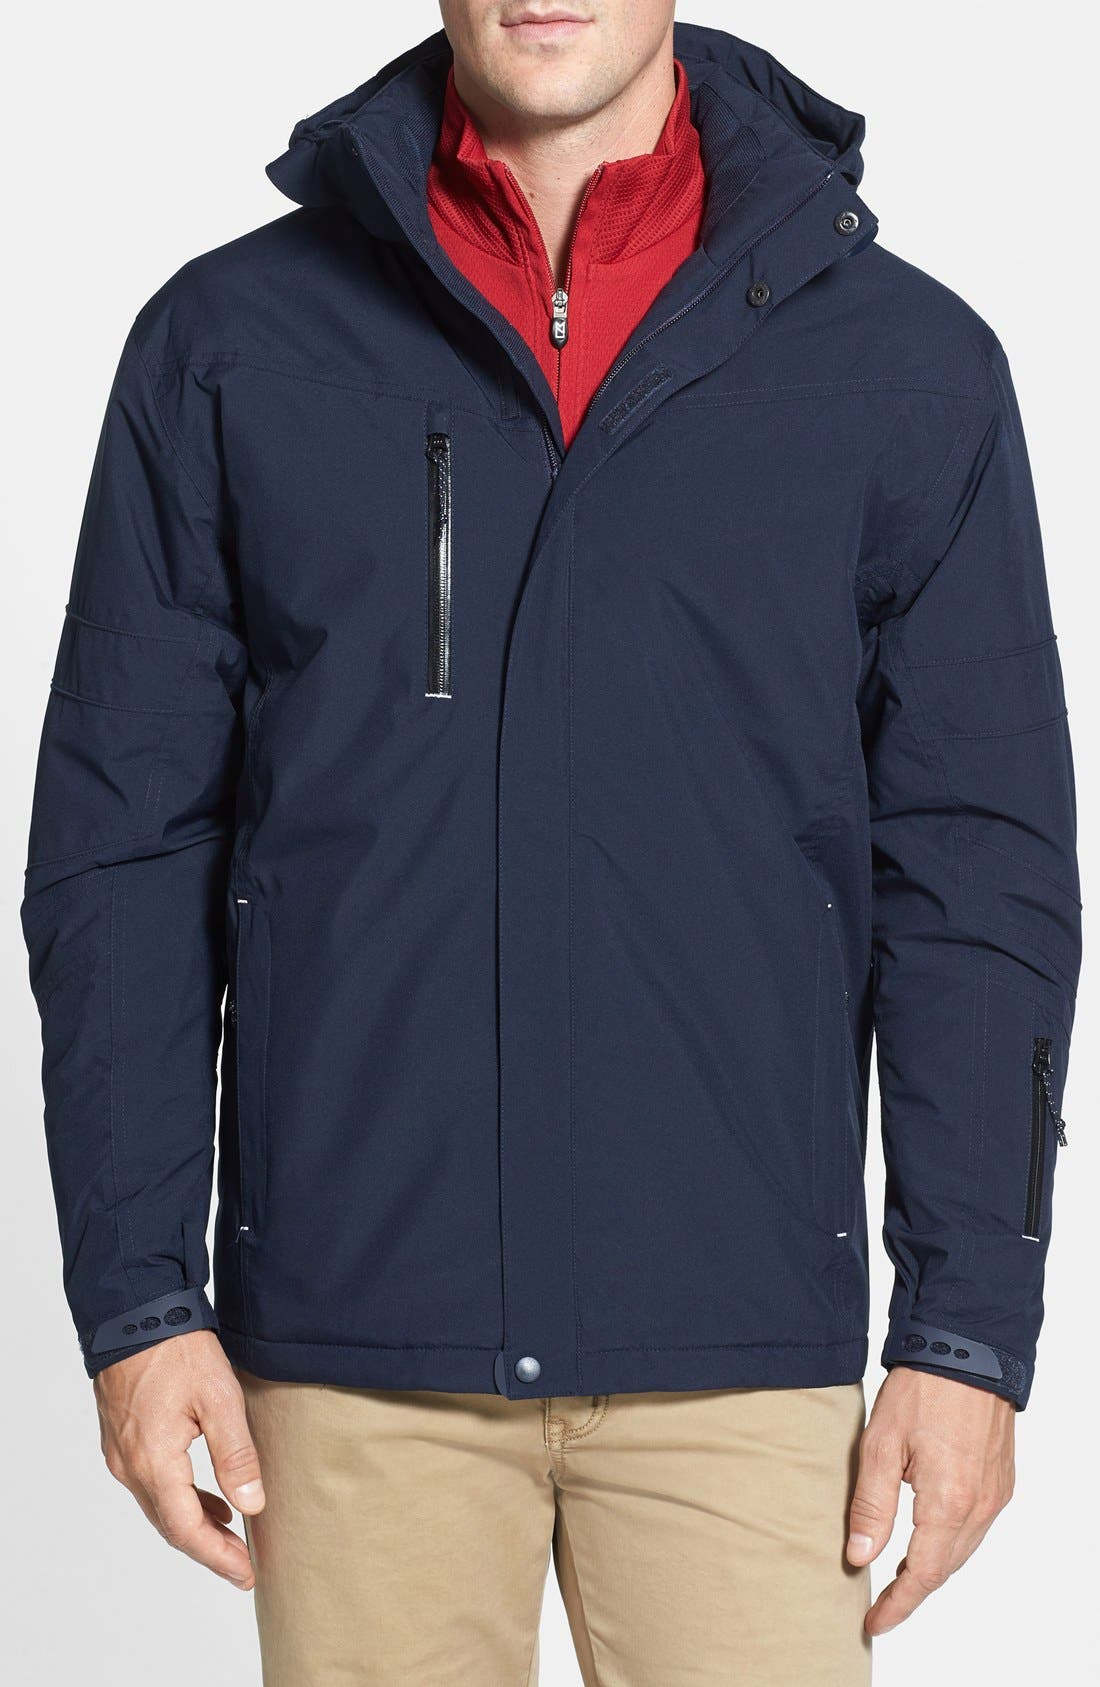 Cutter & Buck WeatherTec Sanders Jacket (Big & Tall)